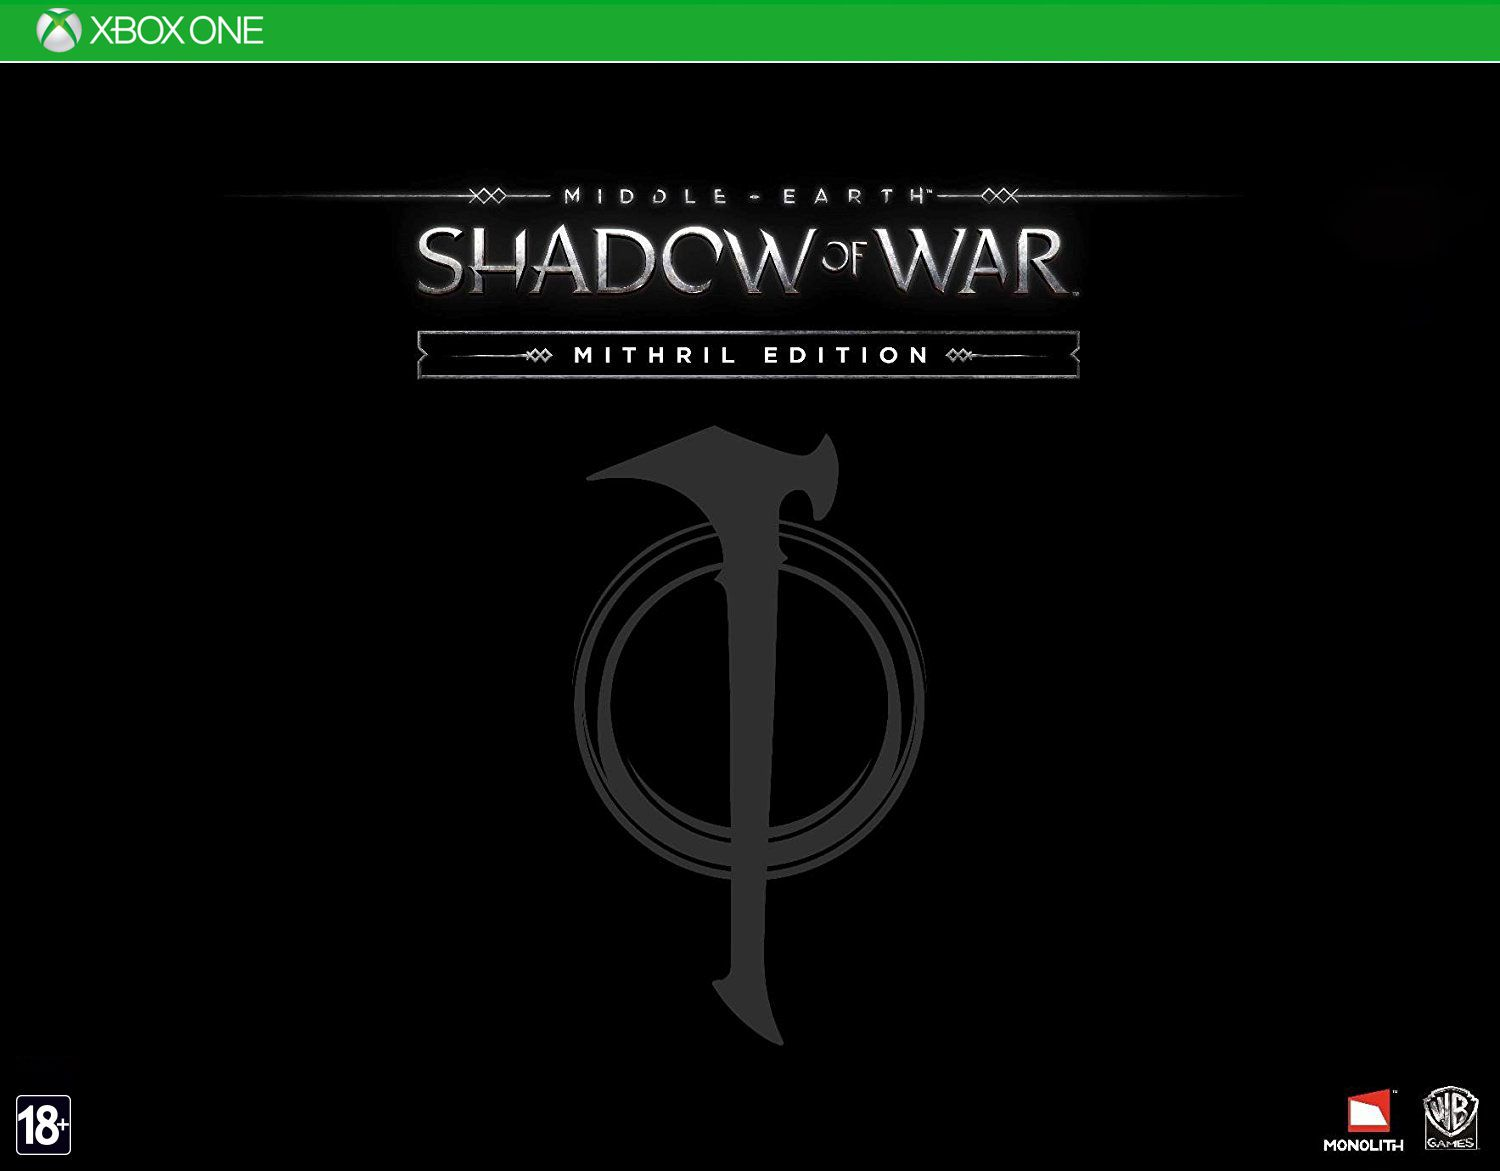 Средиземье: Тени войны (Middle-earth: Shadow of War). Mithrill Edition [Xbox One]